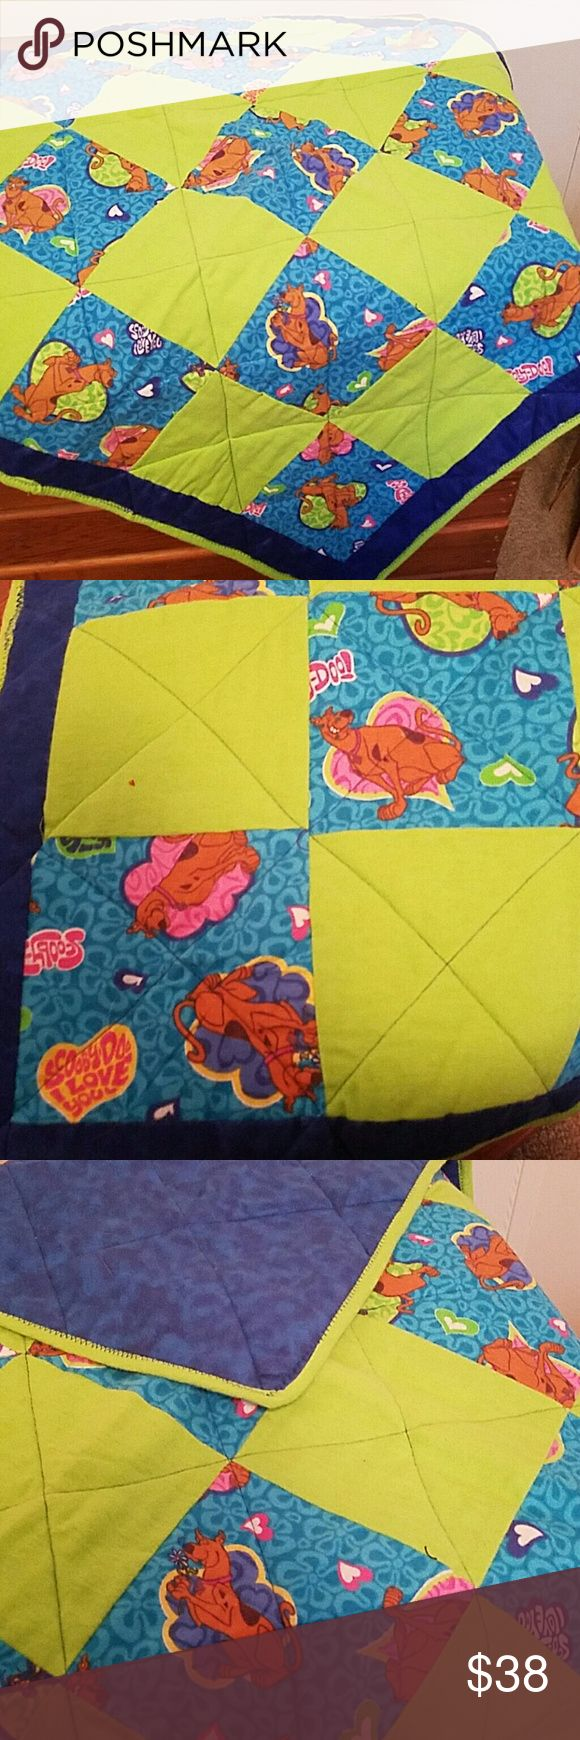 """Scooby-Doo baby blanket Handmade Scooby-Doo baby blanket/play pad. Flannel material.  Size: 29""""x61"""" Accessories"""